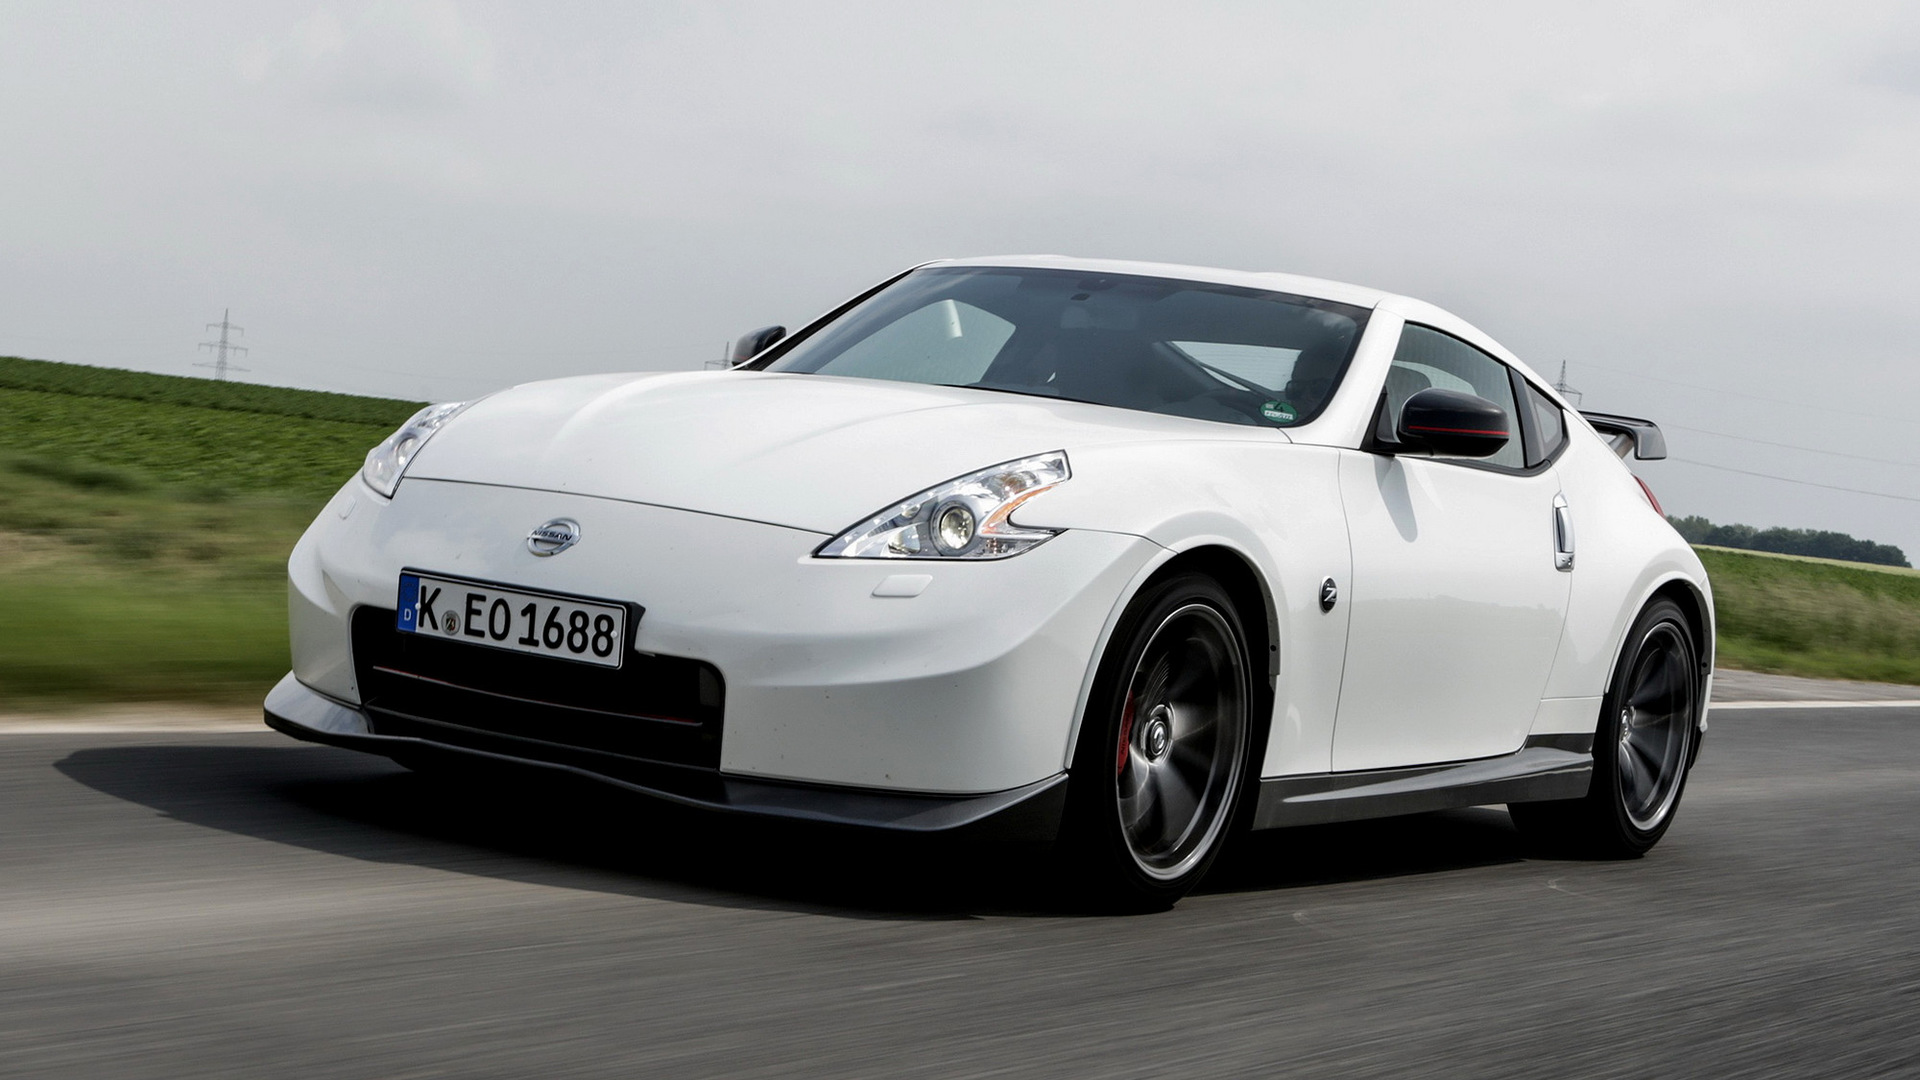 2013 370z wallpaper - photo #21